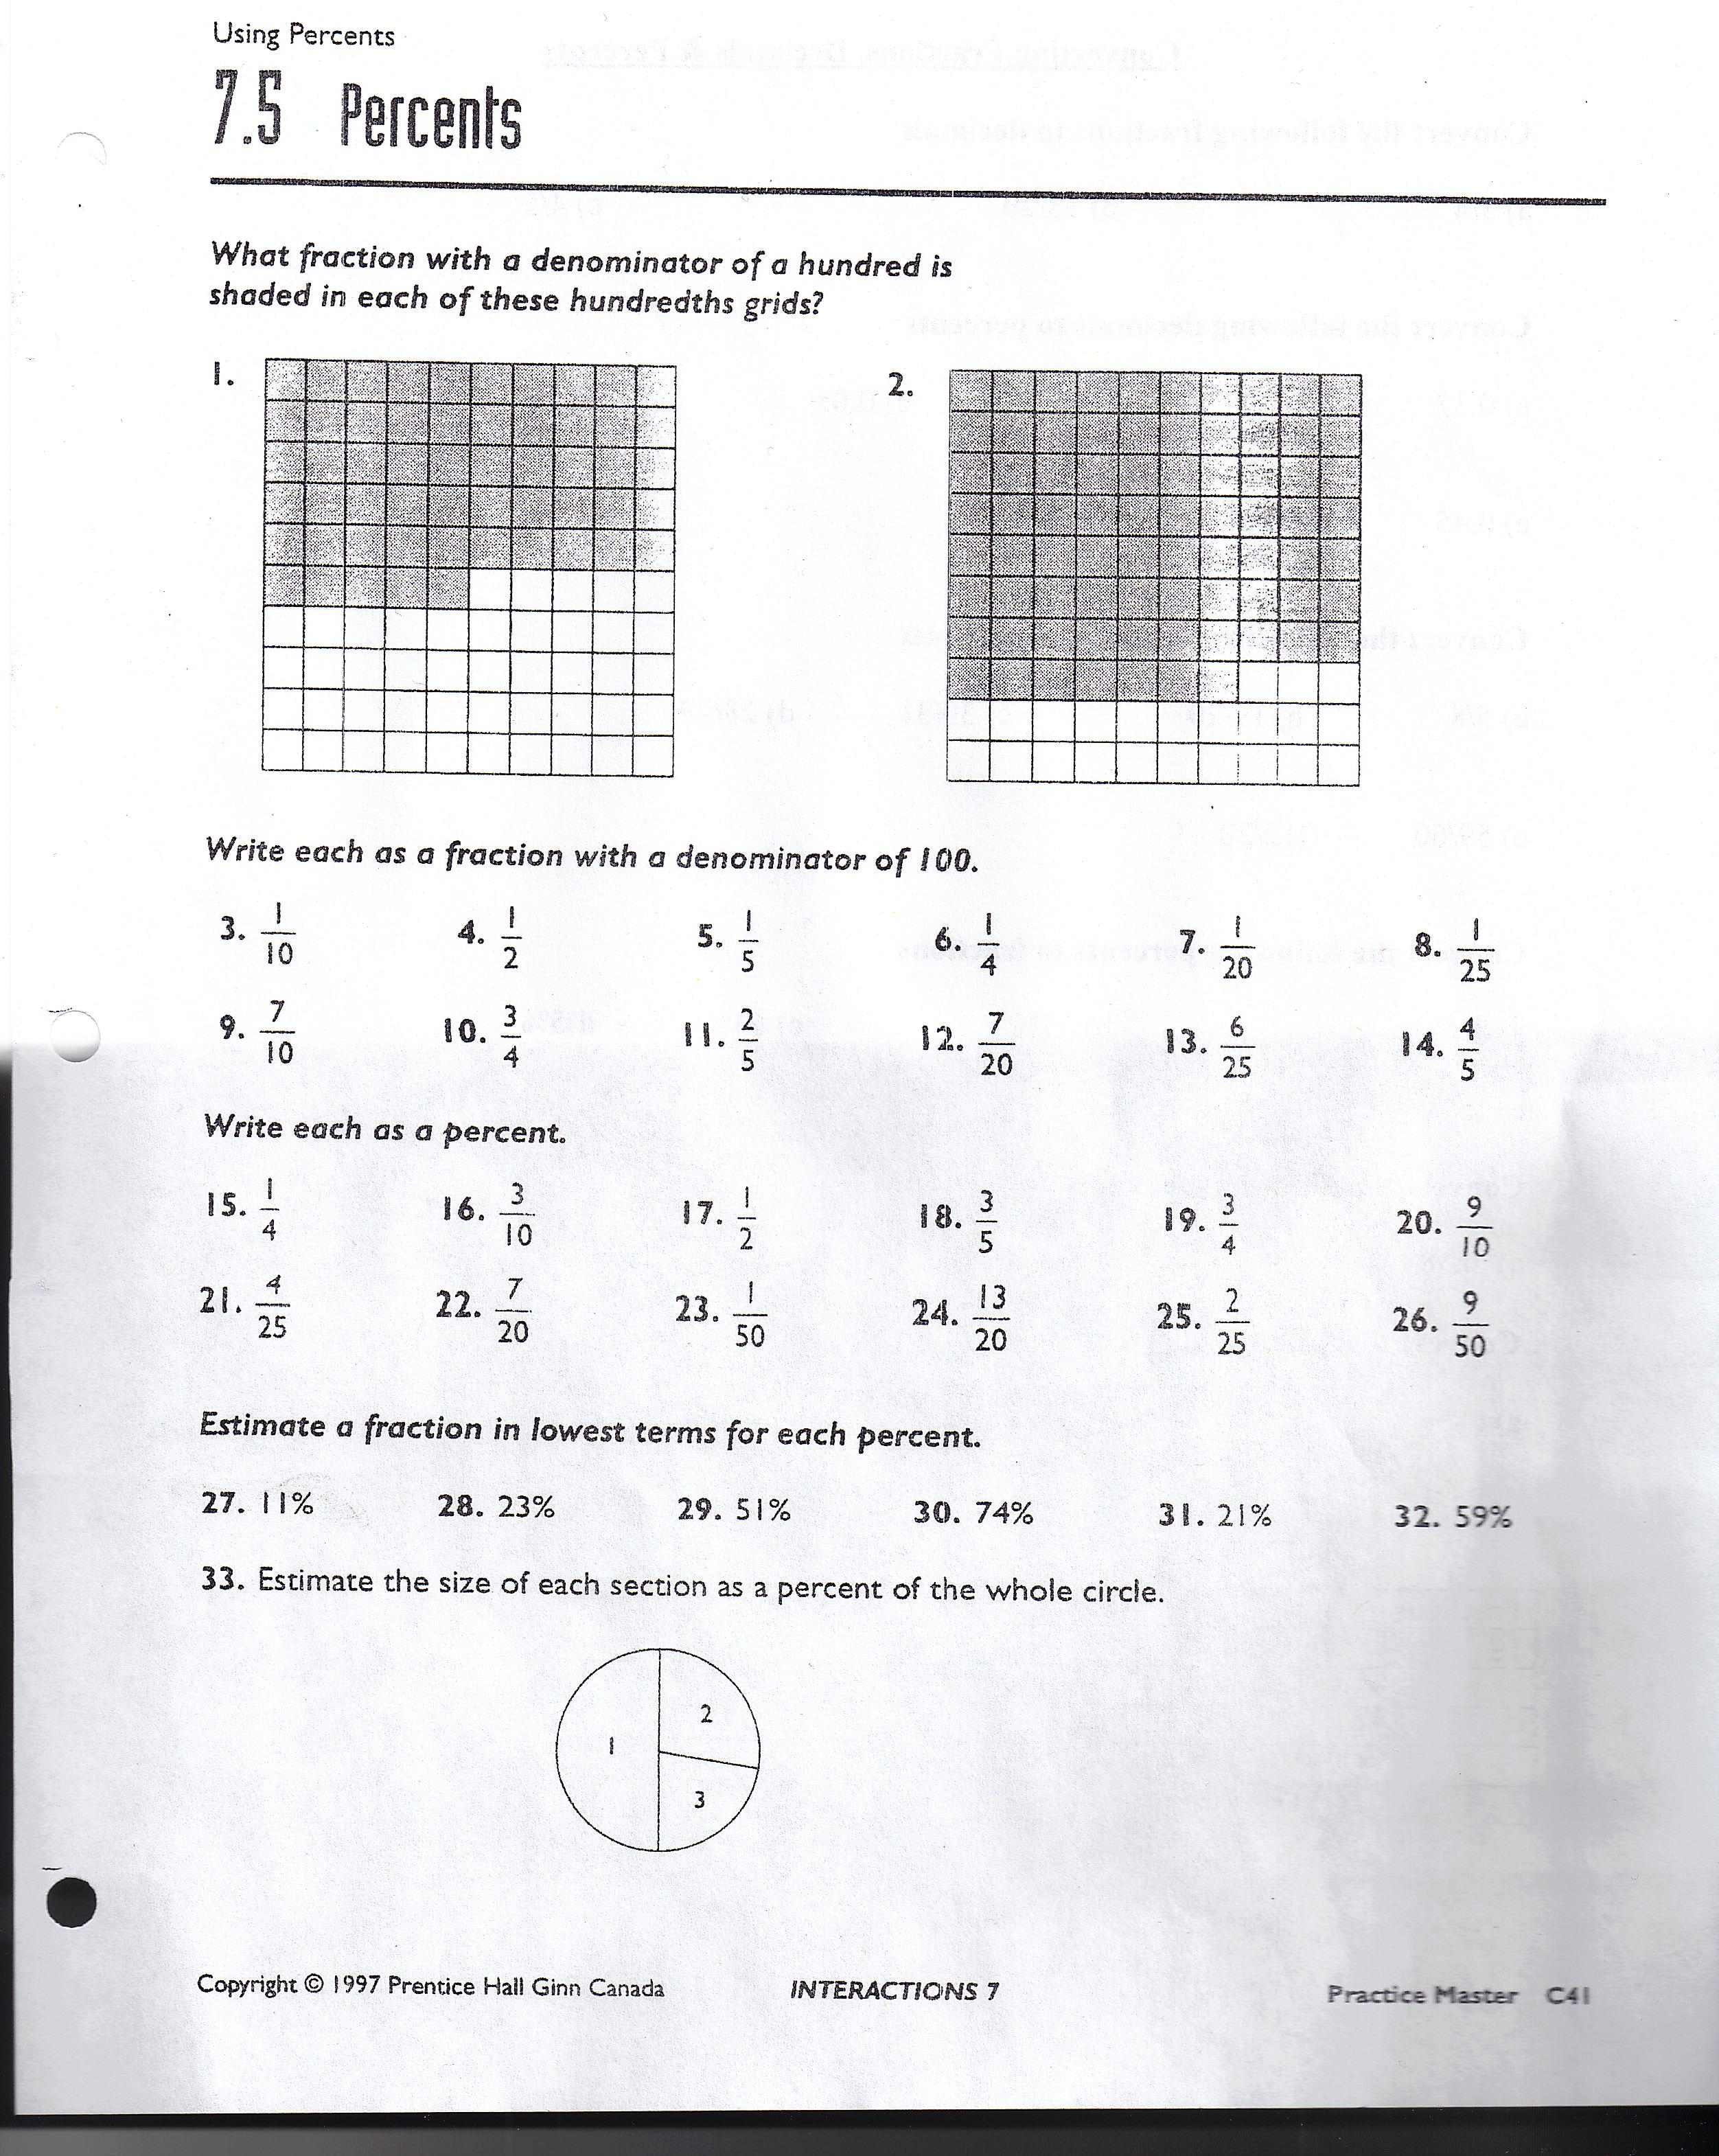 Basic Fraction Worksheet 130 131 Printable Worksheets